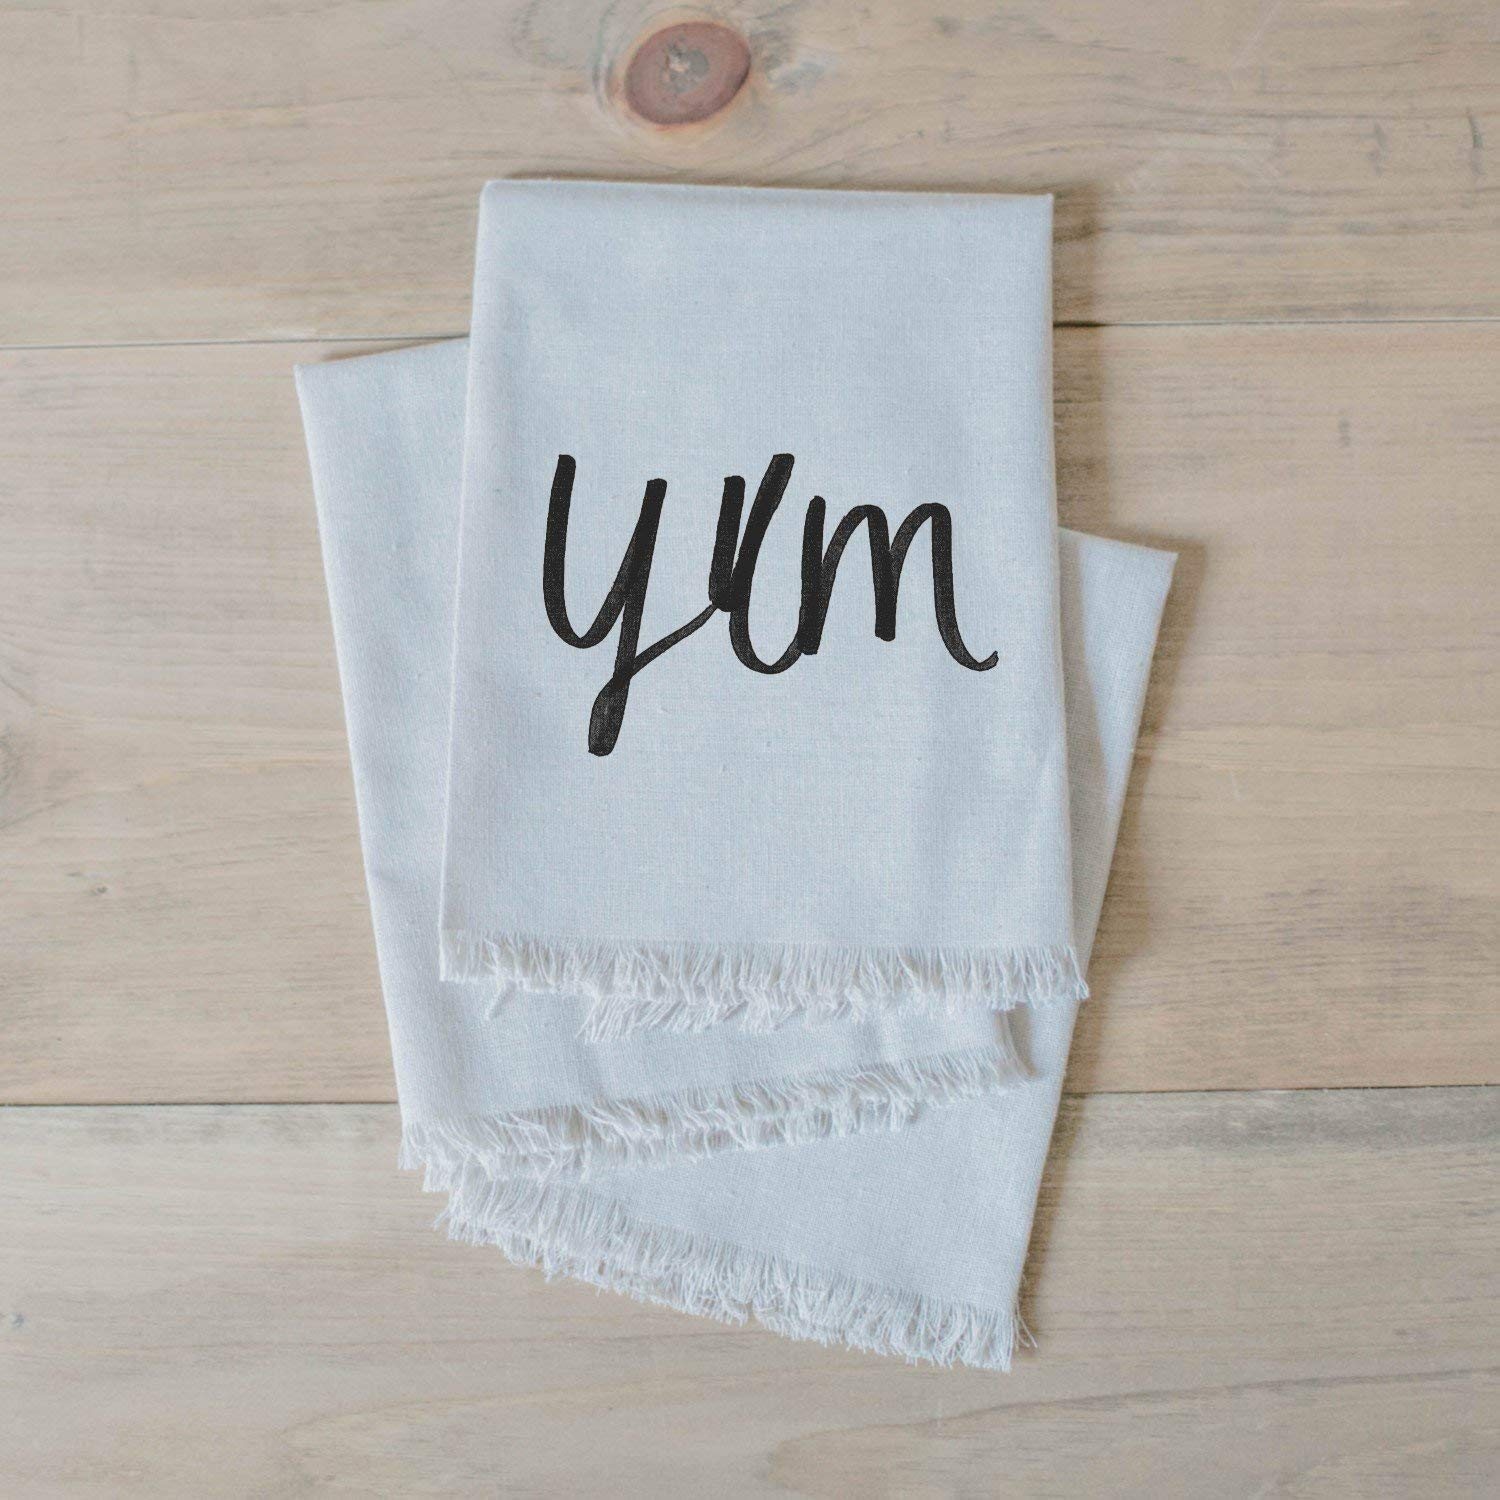 place setting table place setting Handmade in the USA home decor dinner party Yum Napkin Set home decor tableware table setting housewarming gift